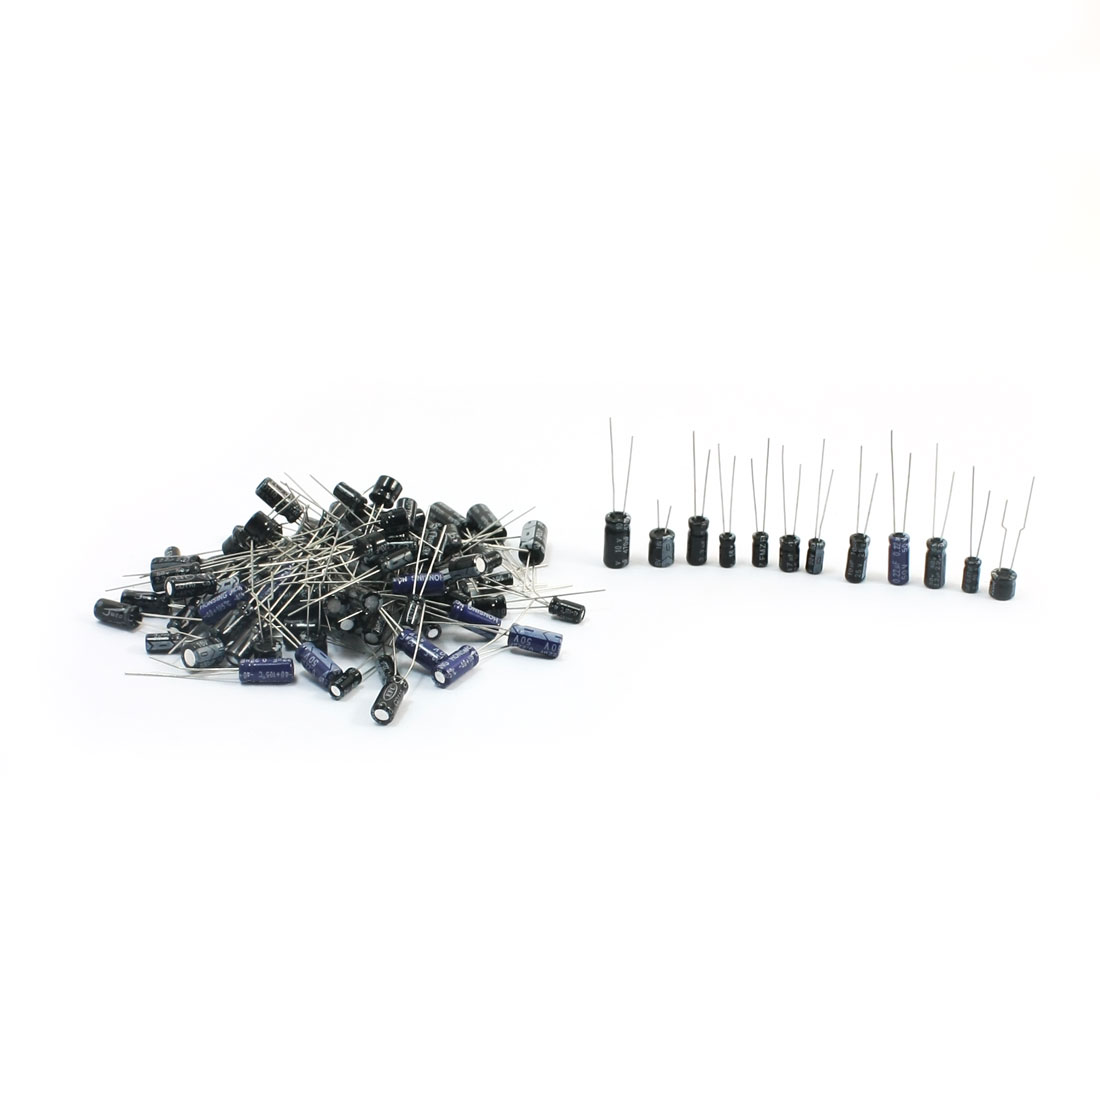 120Pcs 12 Values 0.22uF-470uF Radial Lead DIP Electrolytic Capacitors